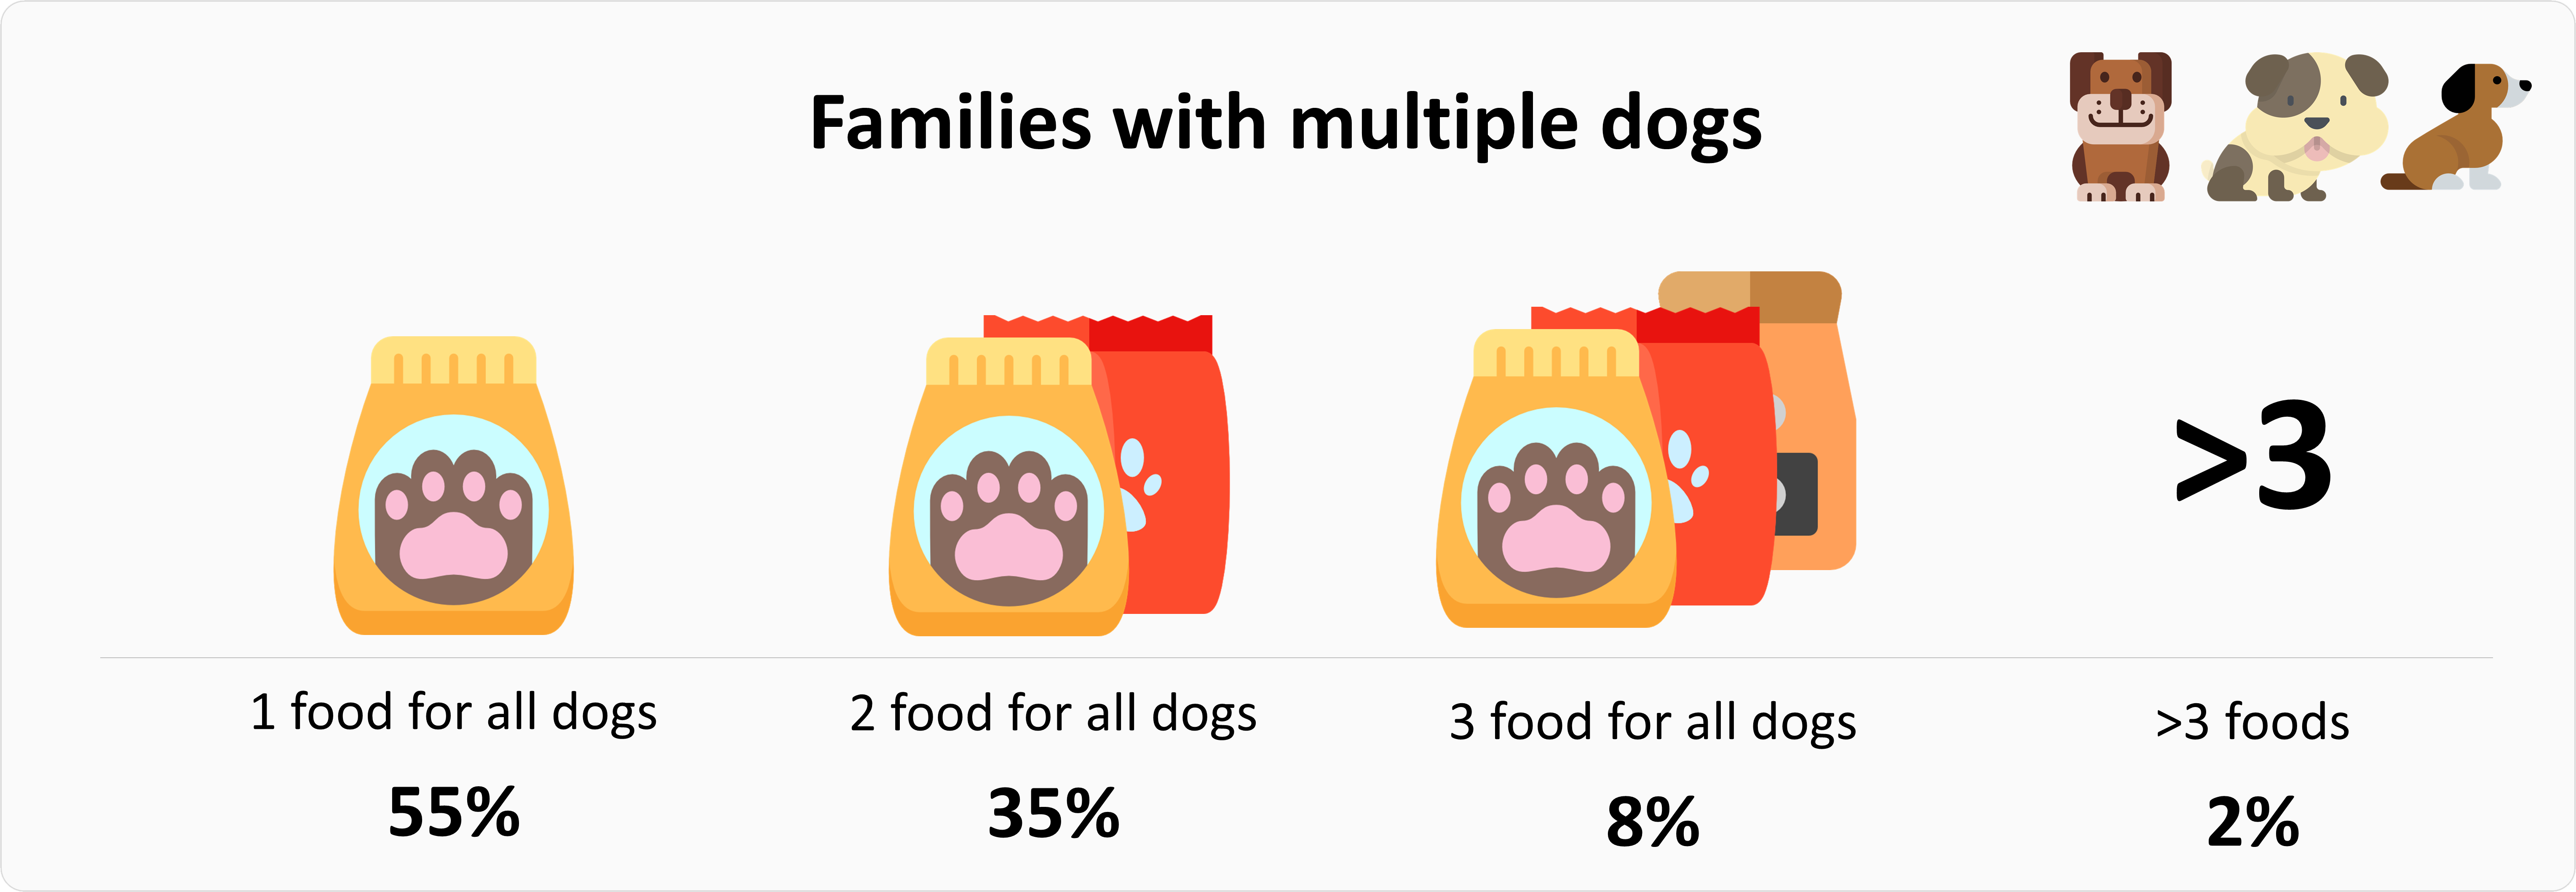 Food habits for families with many dogs